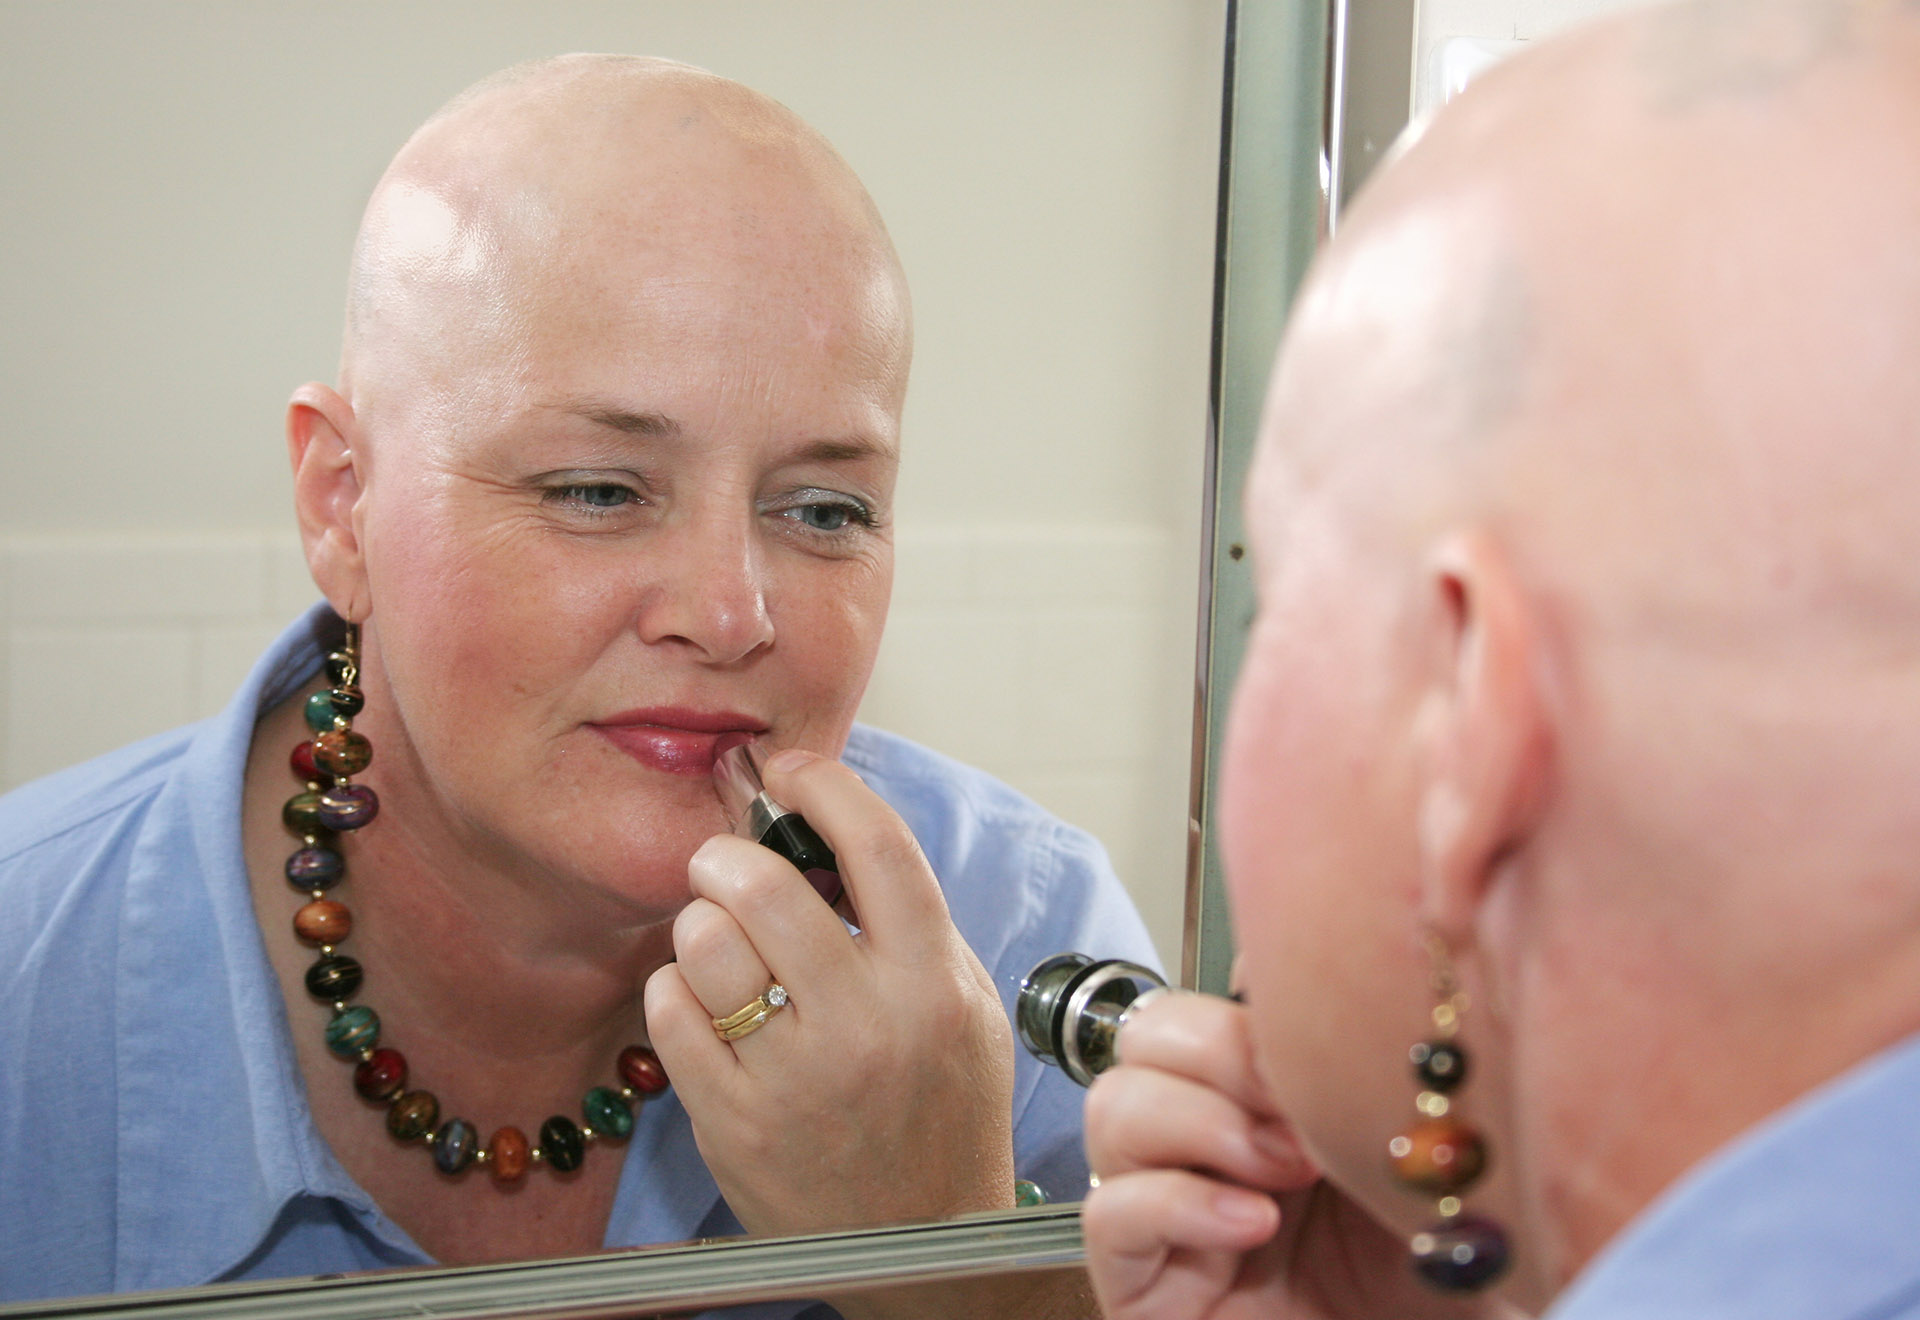 A woman bald from a health problem putting on makeup in the mirror.